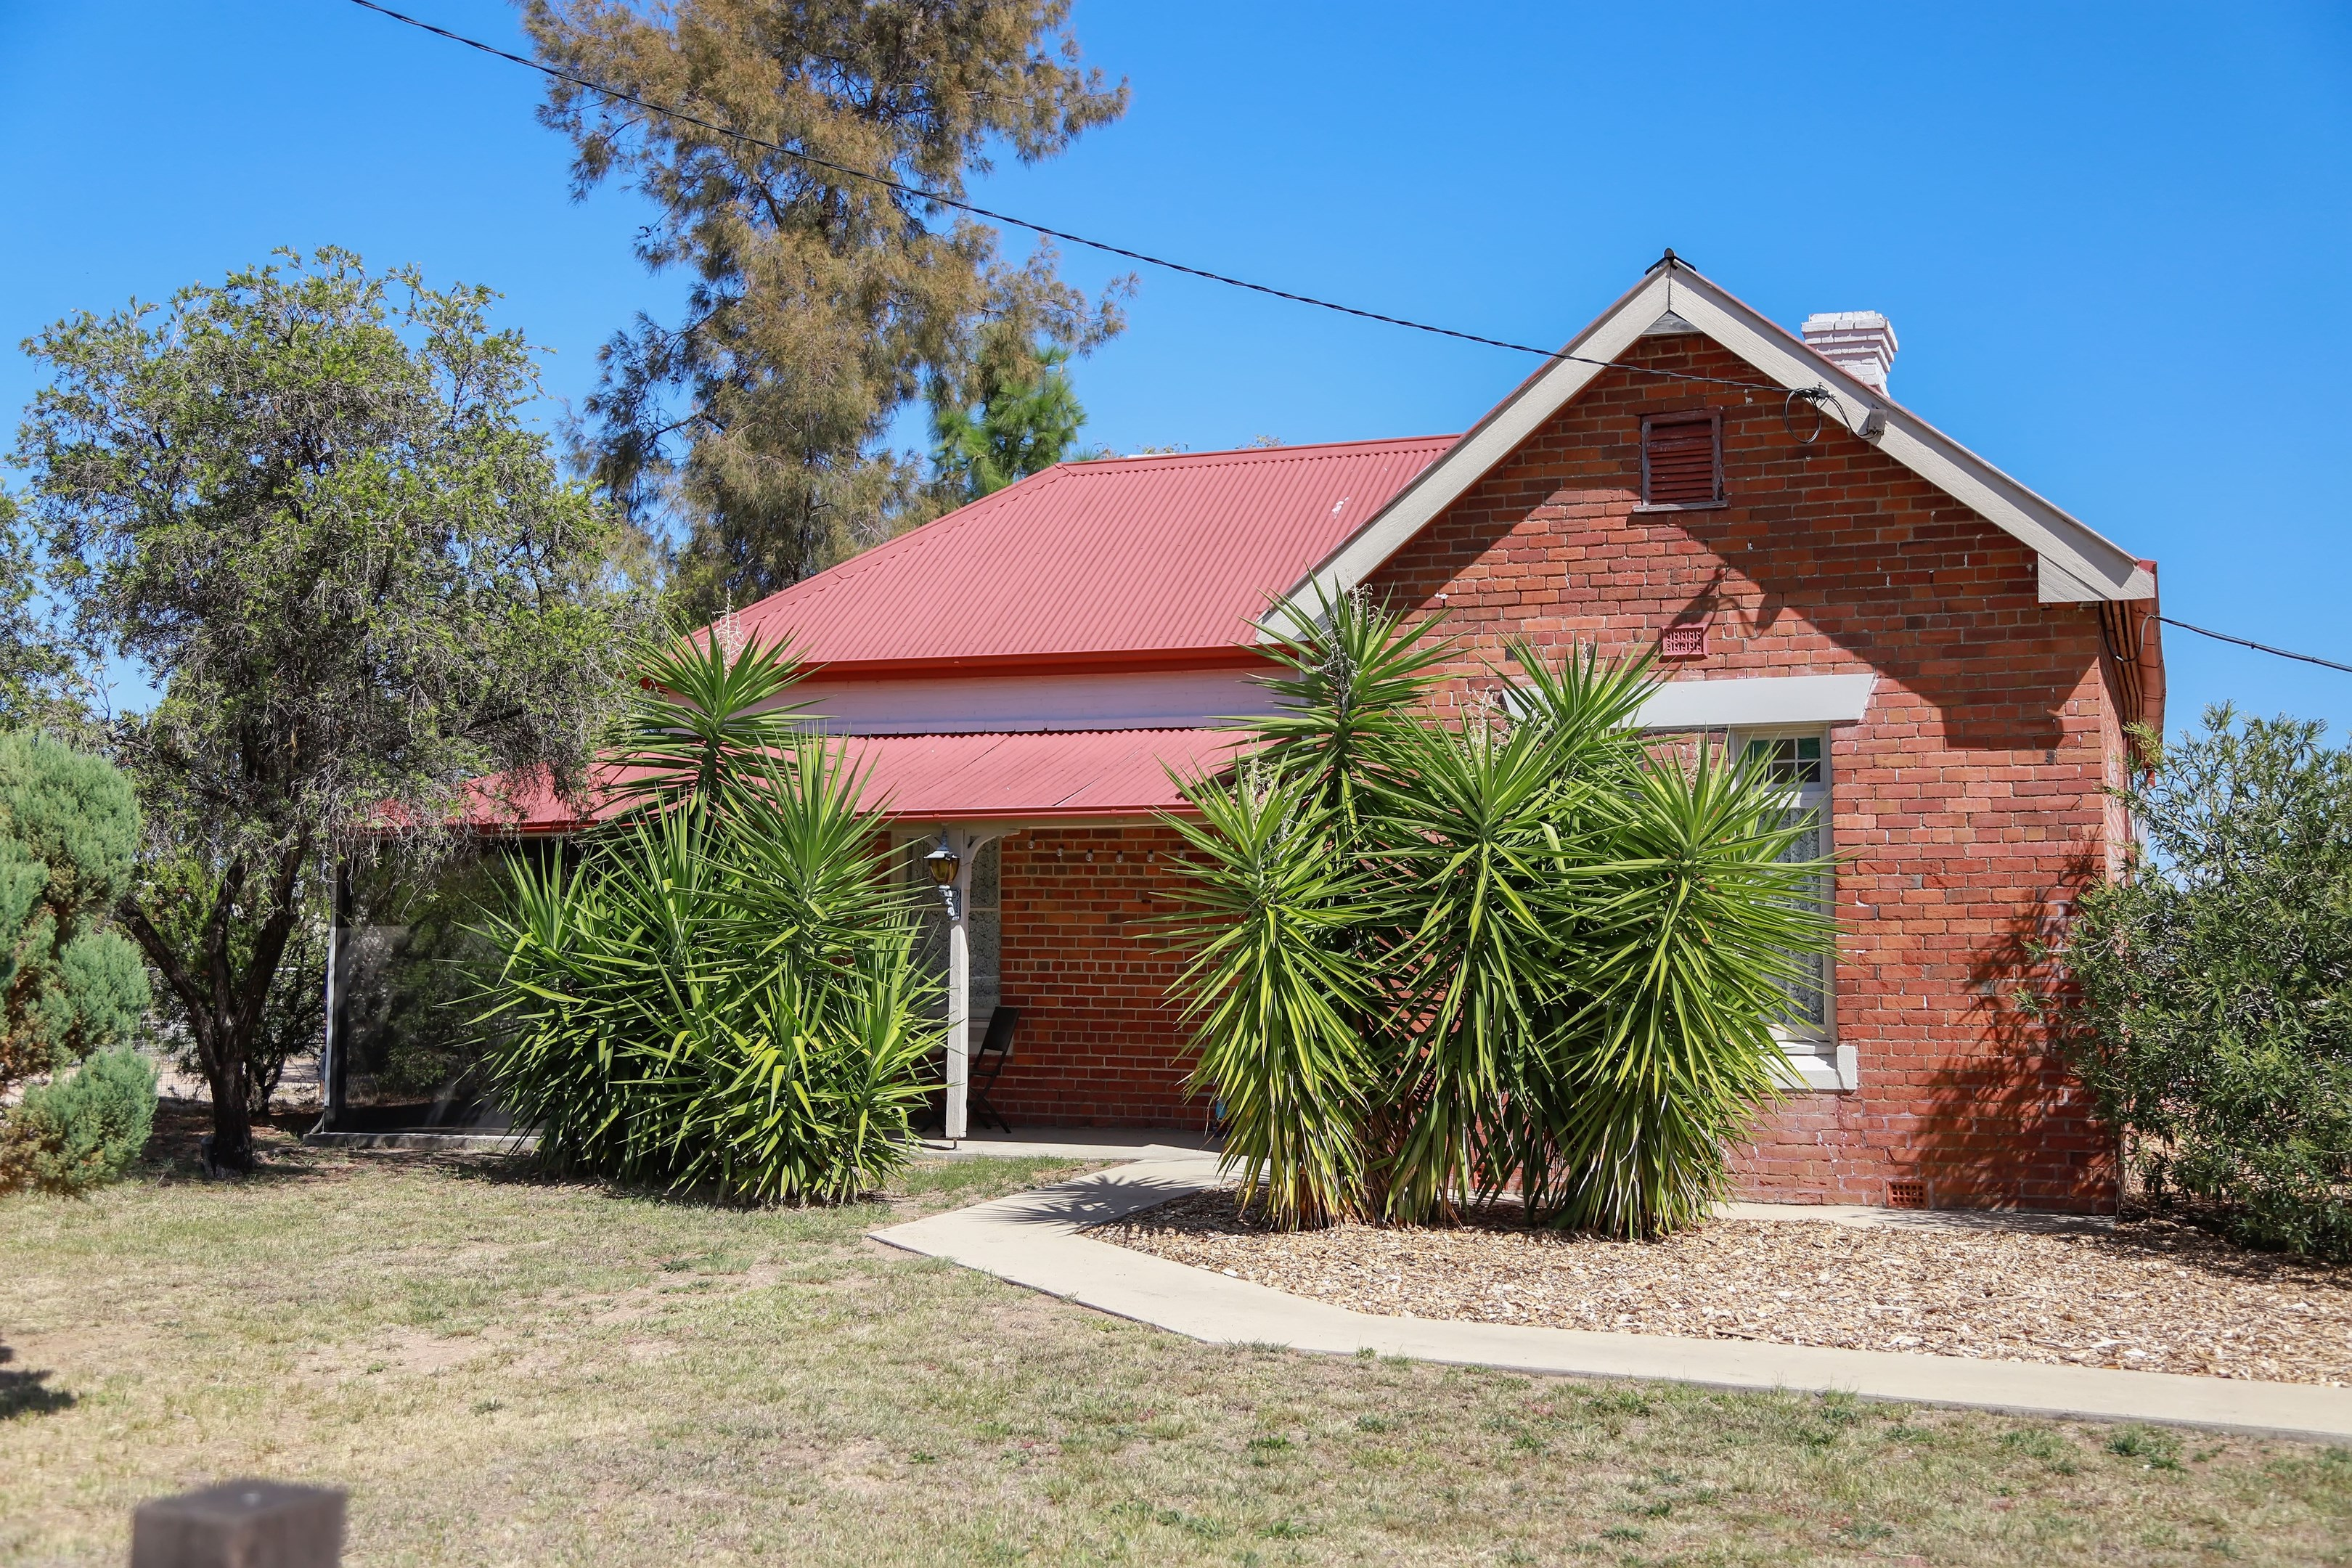 Property Report for 20 Lake Inverell Drive, Inverell NSW 2360